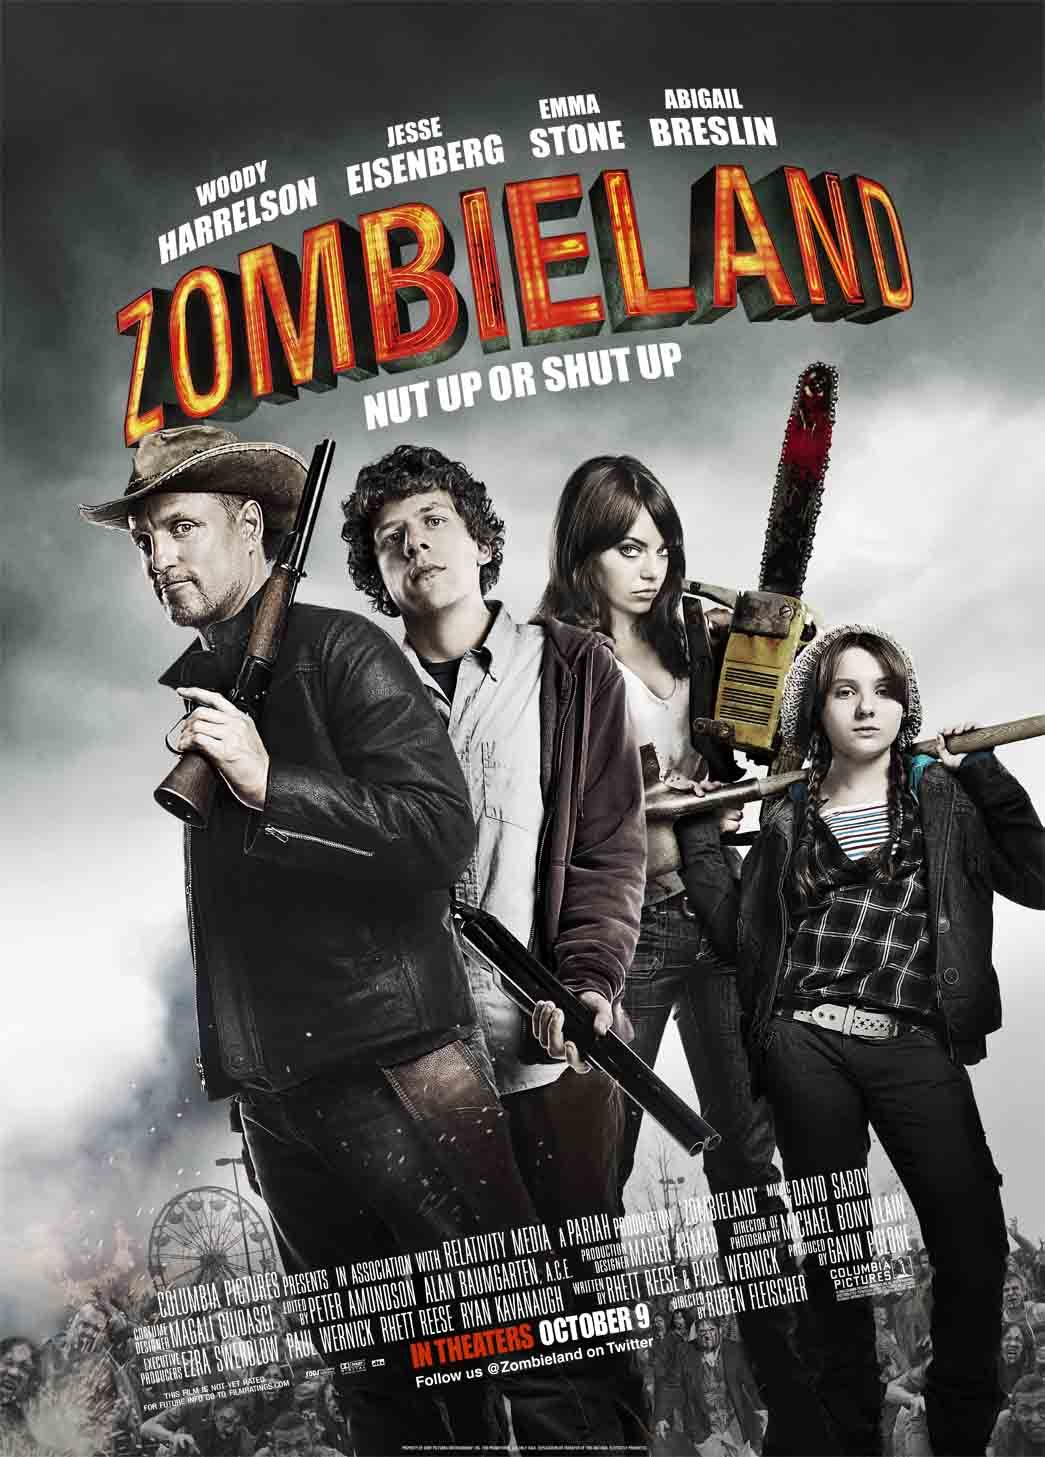 Zombieland (2009) - Directed by: Ruben FleischerStarring: Jesse Eisenberg, Woody Harrelson, Emma Stone, Abigail BreslinRated: R for Horror Violence/Gore and LanguageRunning Time: 1h 28mTMM Score: 3.5 StarsSTRENGTHS: Performances, Action, HilariousWEAKNESSES: Awful Character Decisions, Lazy Writing